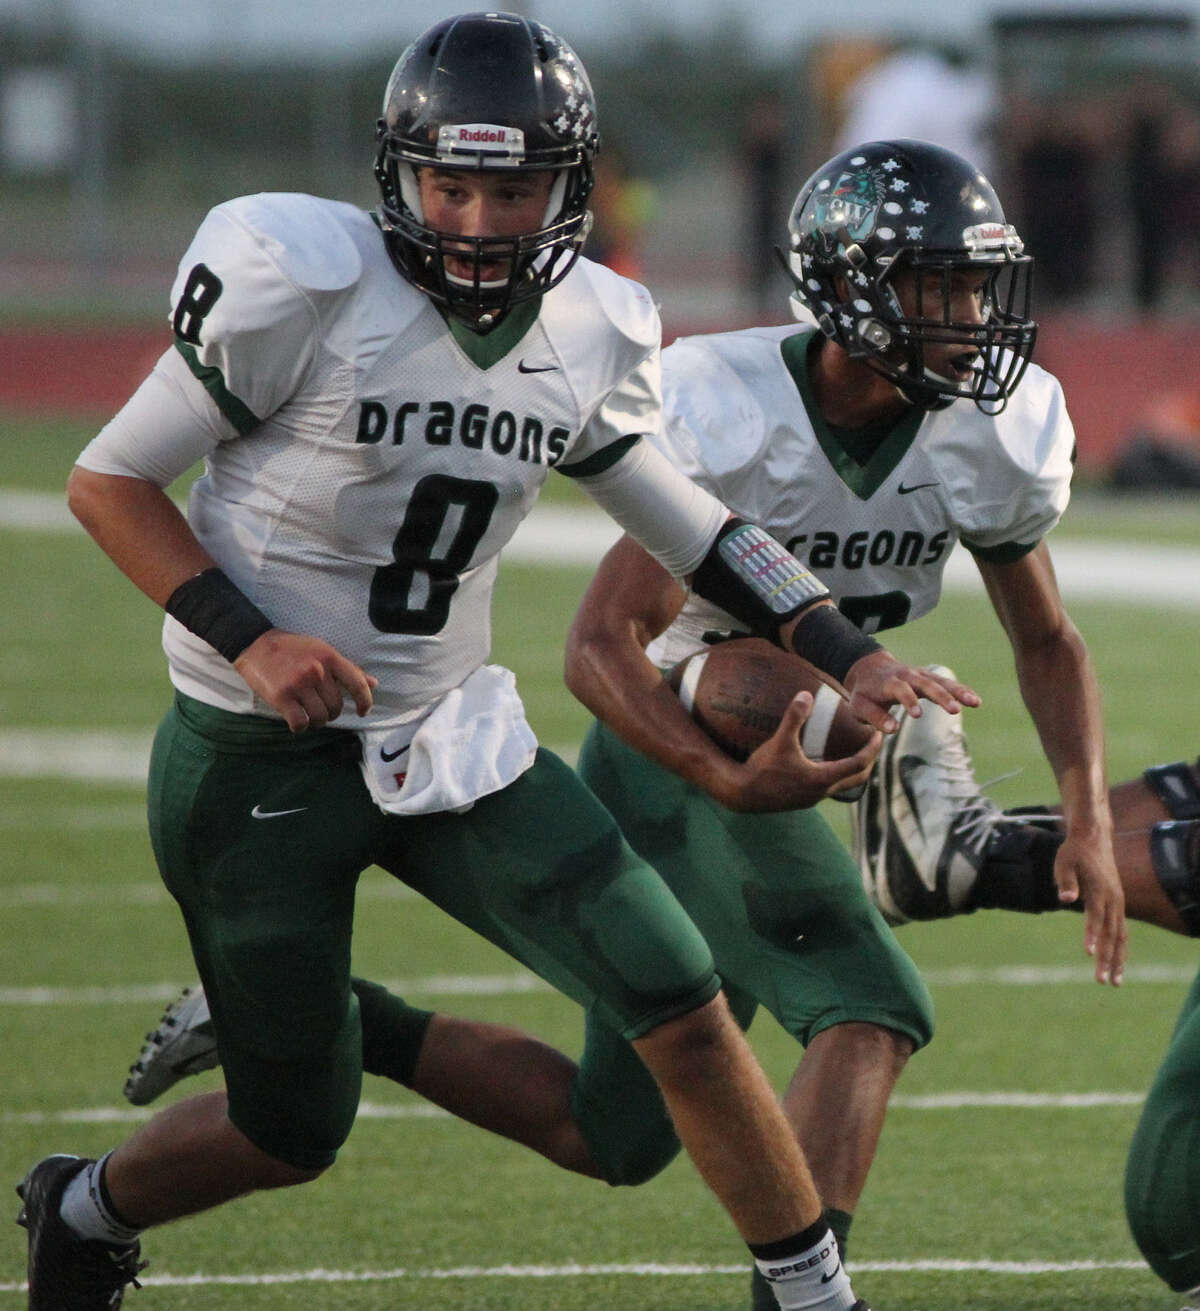 Southwest's quarterback Bowen Crisp (8) protects his running back during a game against the Eagle Pass Eagles on Sept. 26 in Eagle Pass. Southwest won, 54-44.